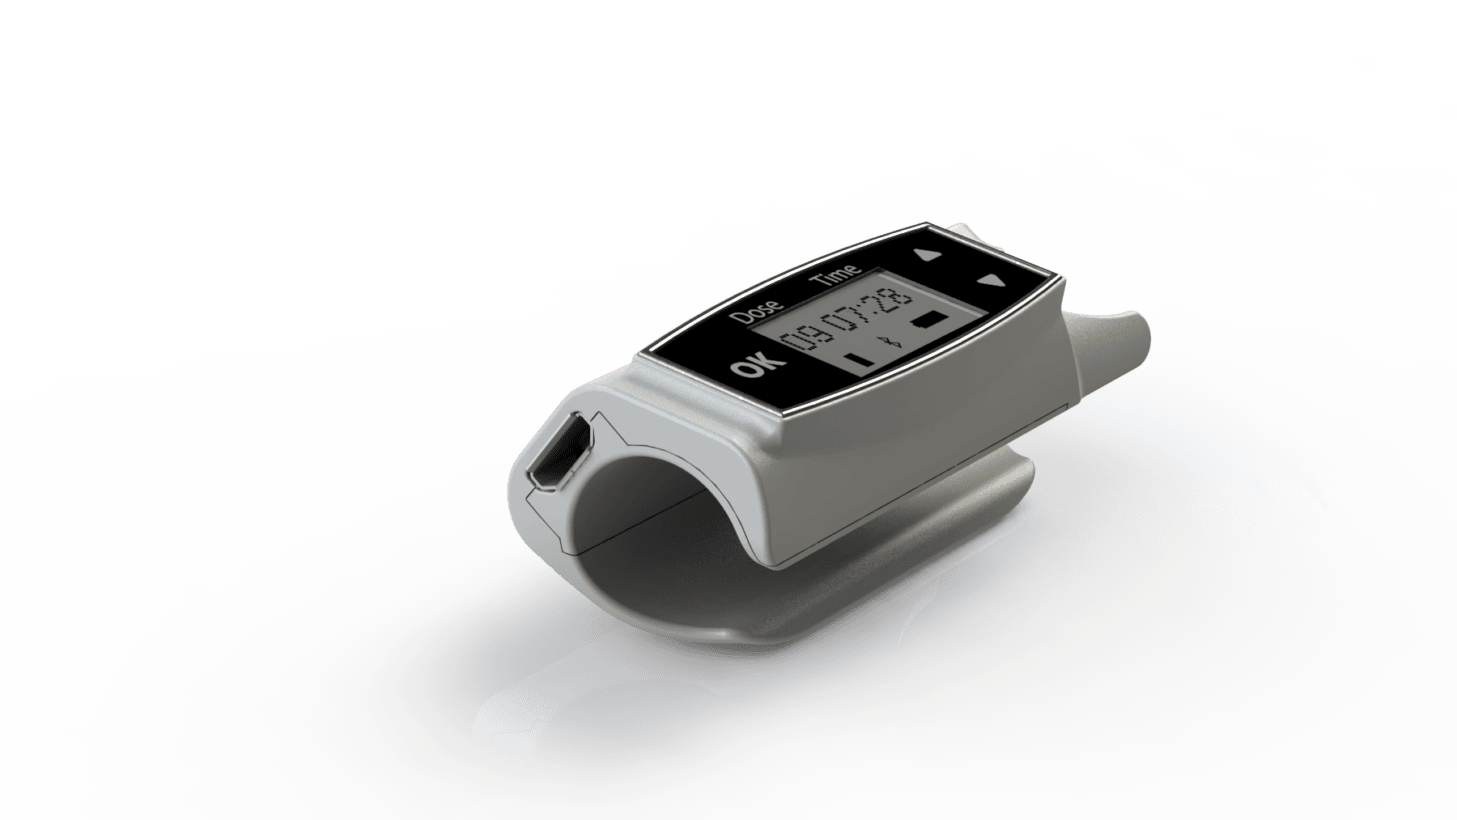 This founder built a device to prevent insulin overdoses after almost killing himself